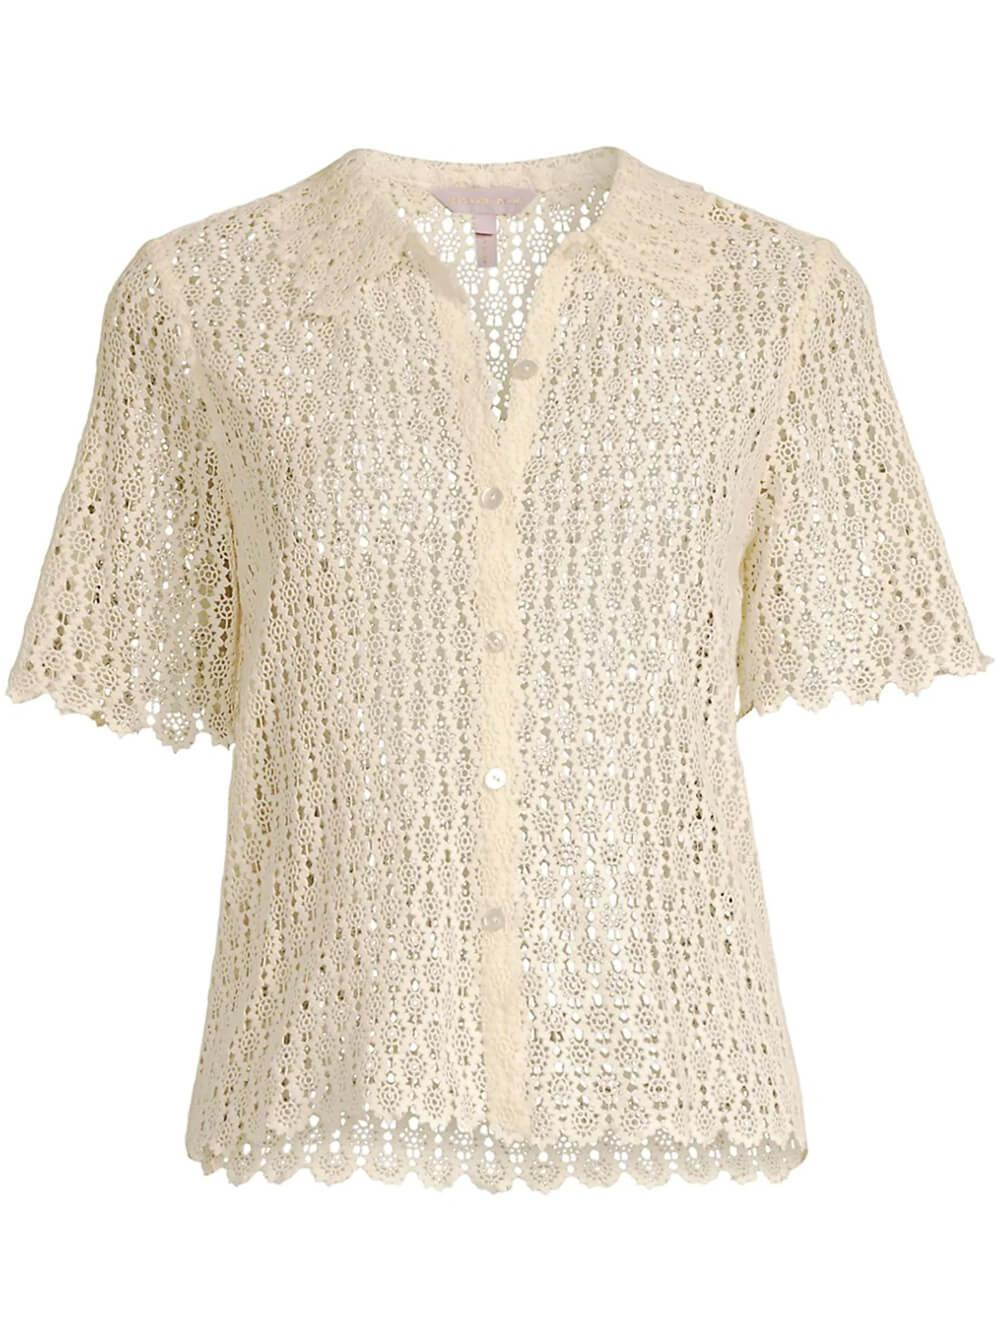 Pina Embroidery Cropped Shirt Item # 421155B765